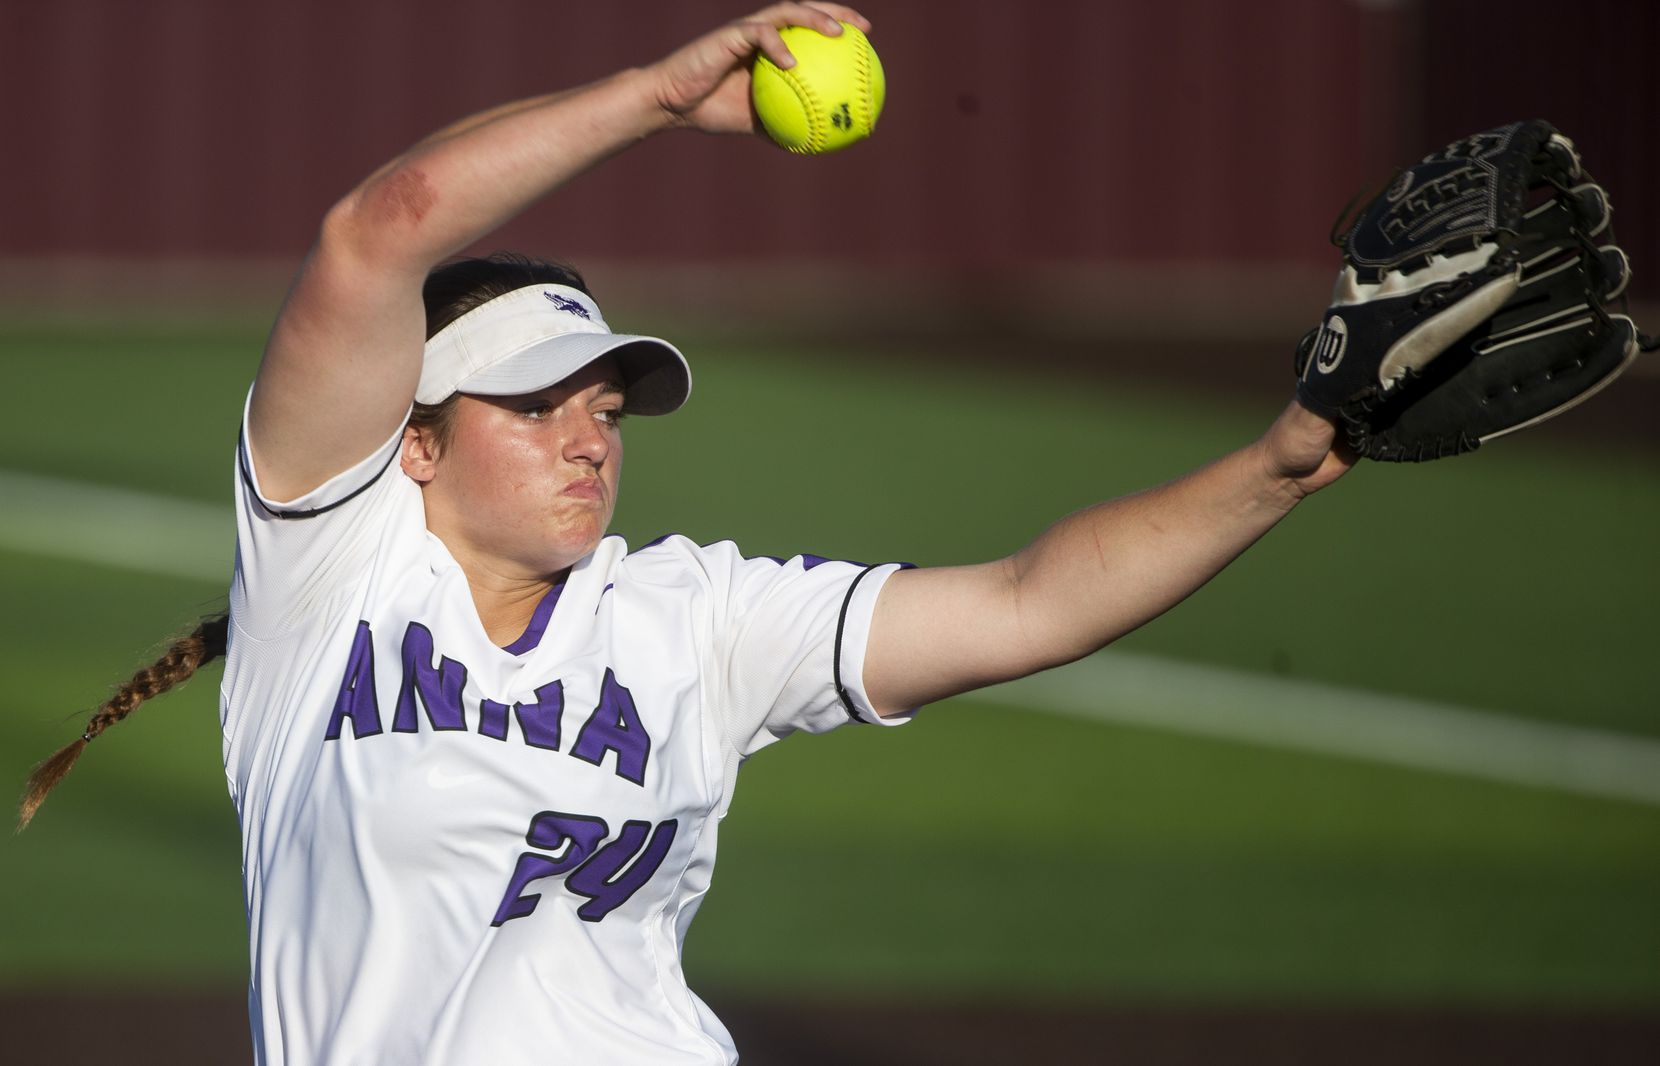 Anna's Hannah Howell pitches during a Class 4A Region II semifinal softball series at the Panther Softball field in Princeton, Texas on Thursday, May 16, 2019.  (Shaban Athuman/Staff Photographer)